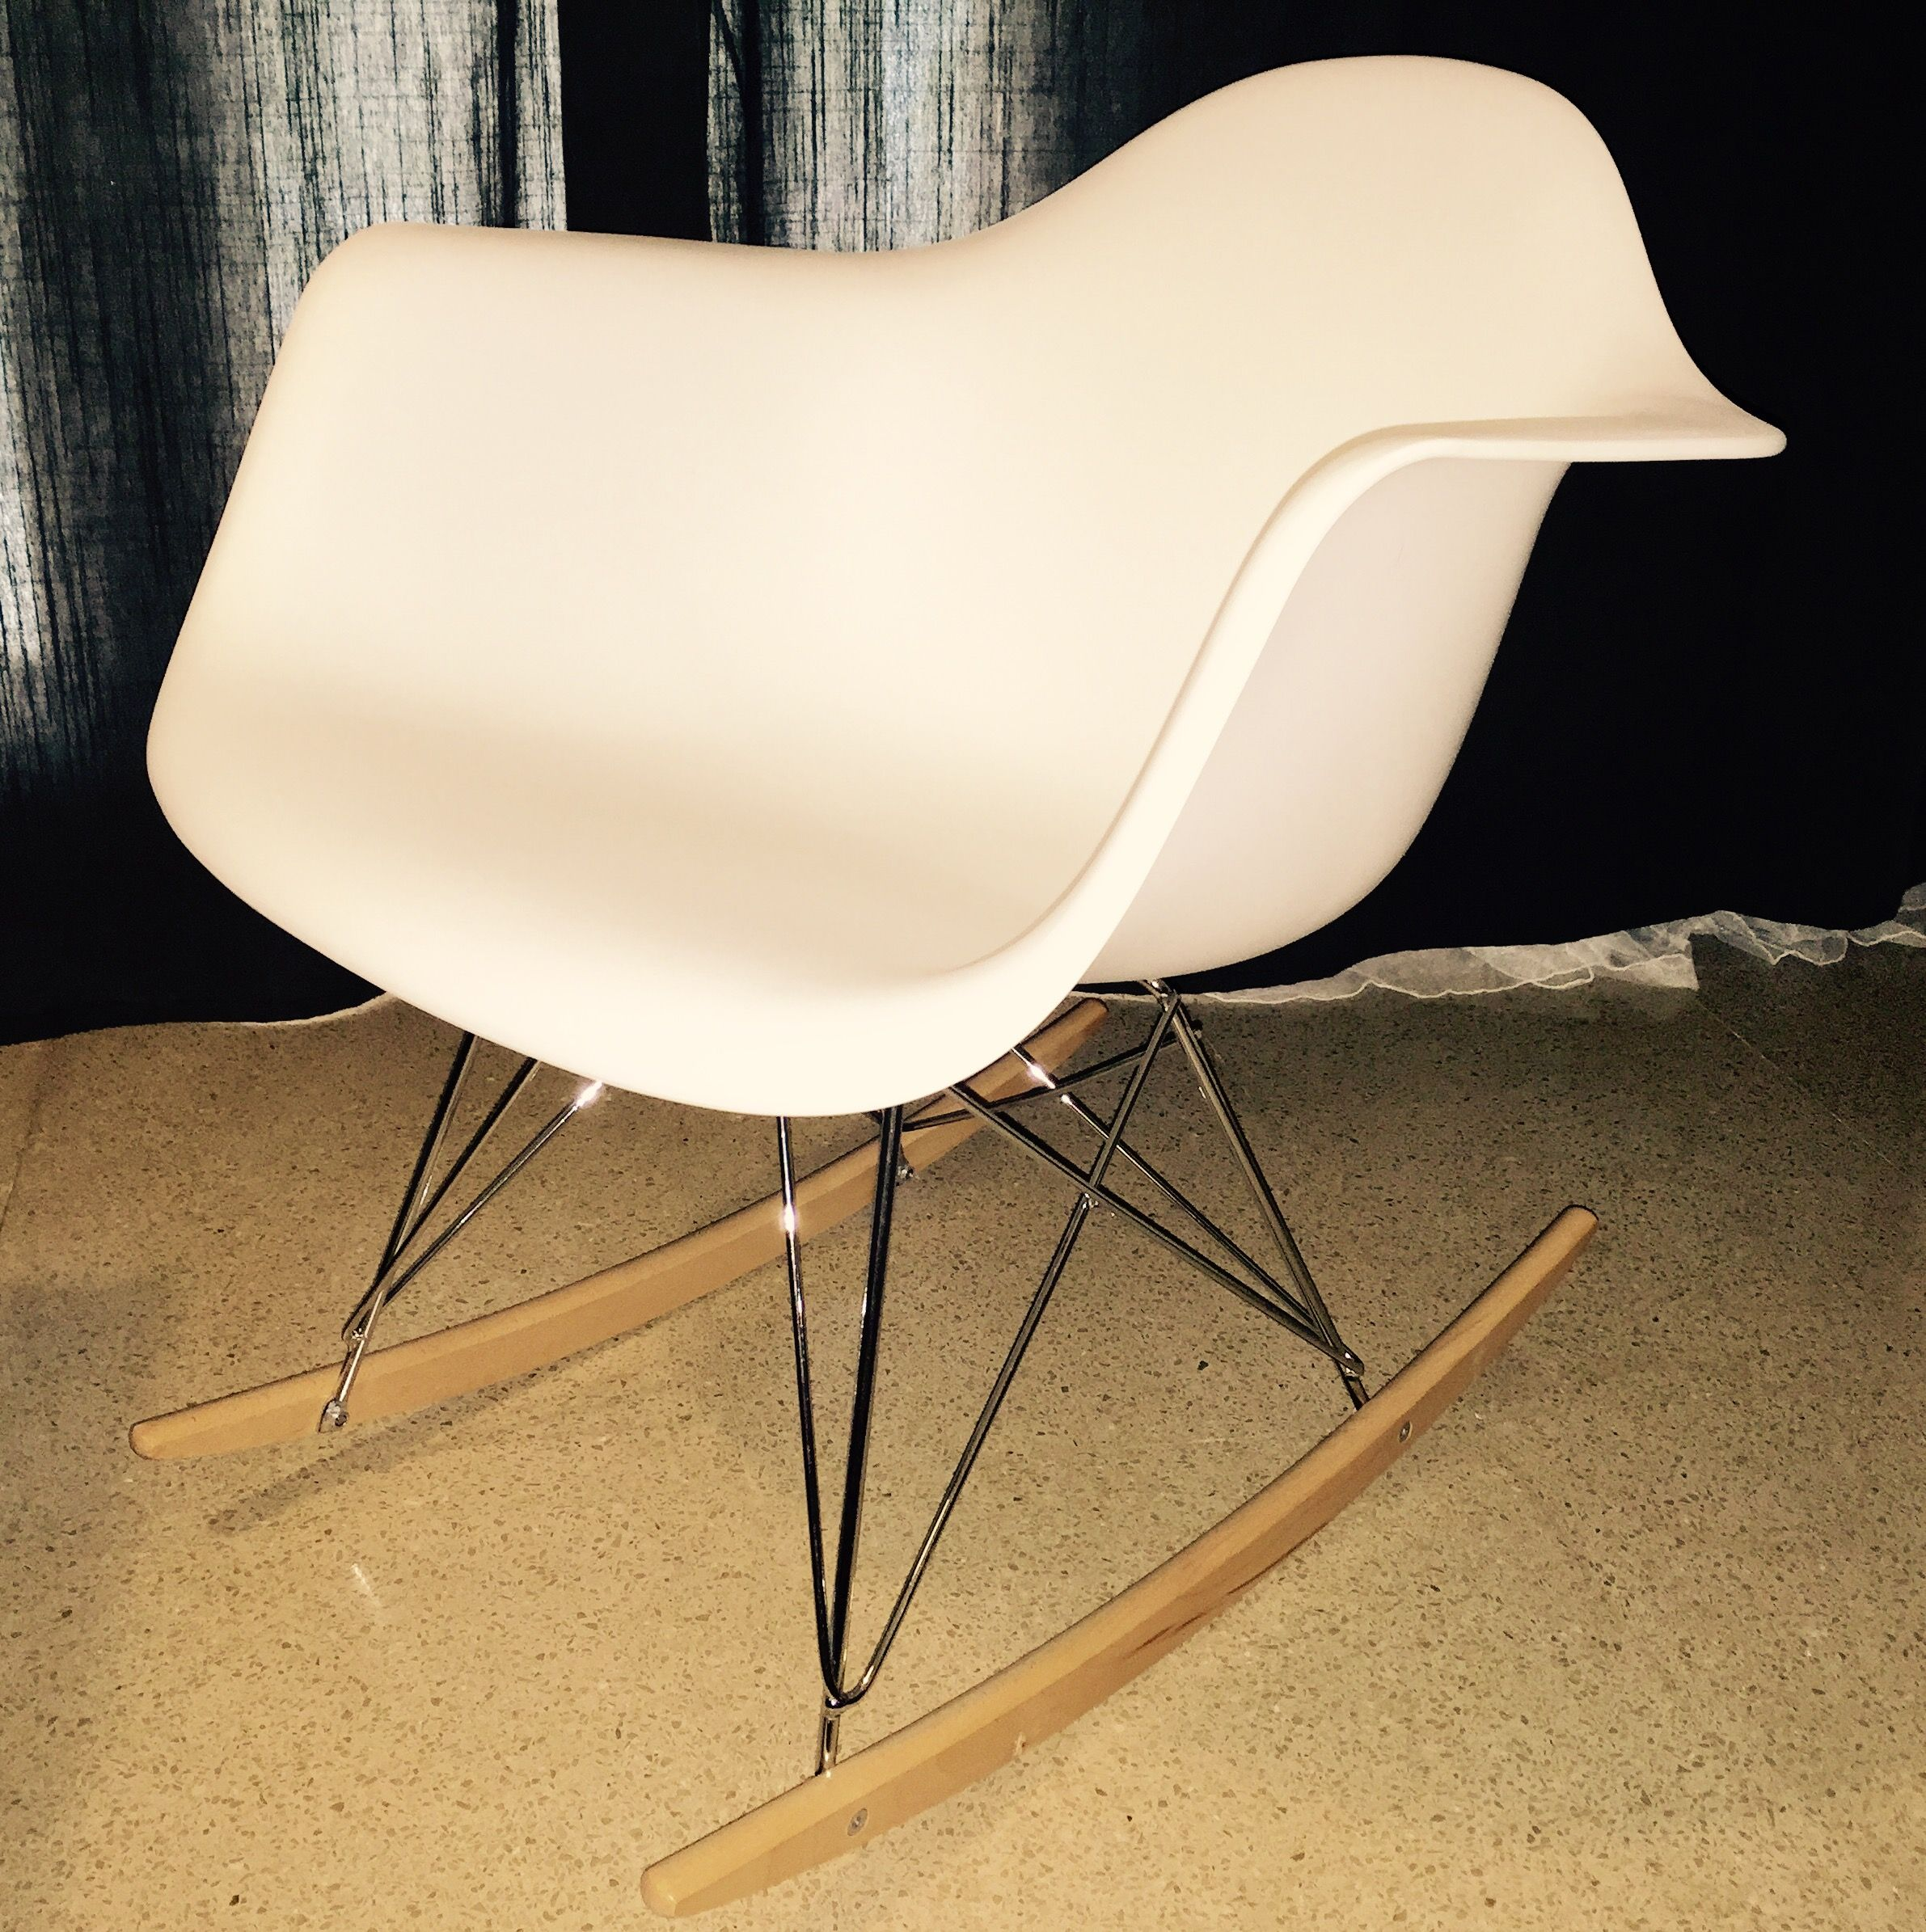 Miraculous Eames Rar Rocking Chair Replica Tower Chair Replicas Gmtry Best Dining Table And Chair Ideas Images Gmtryco